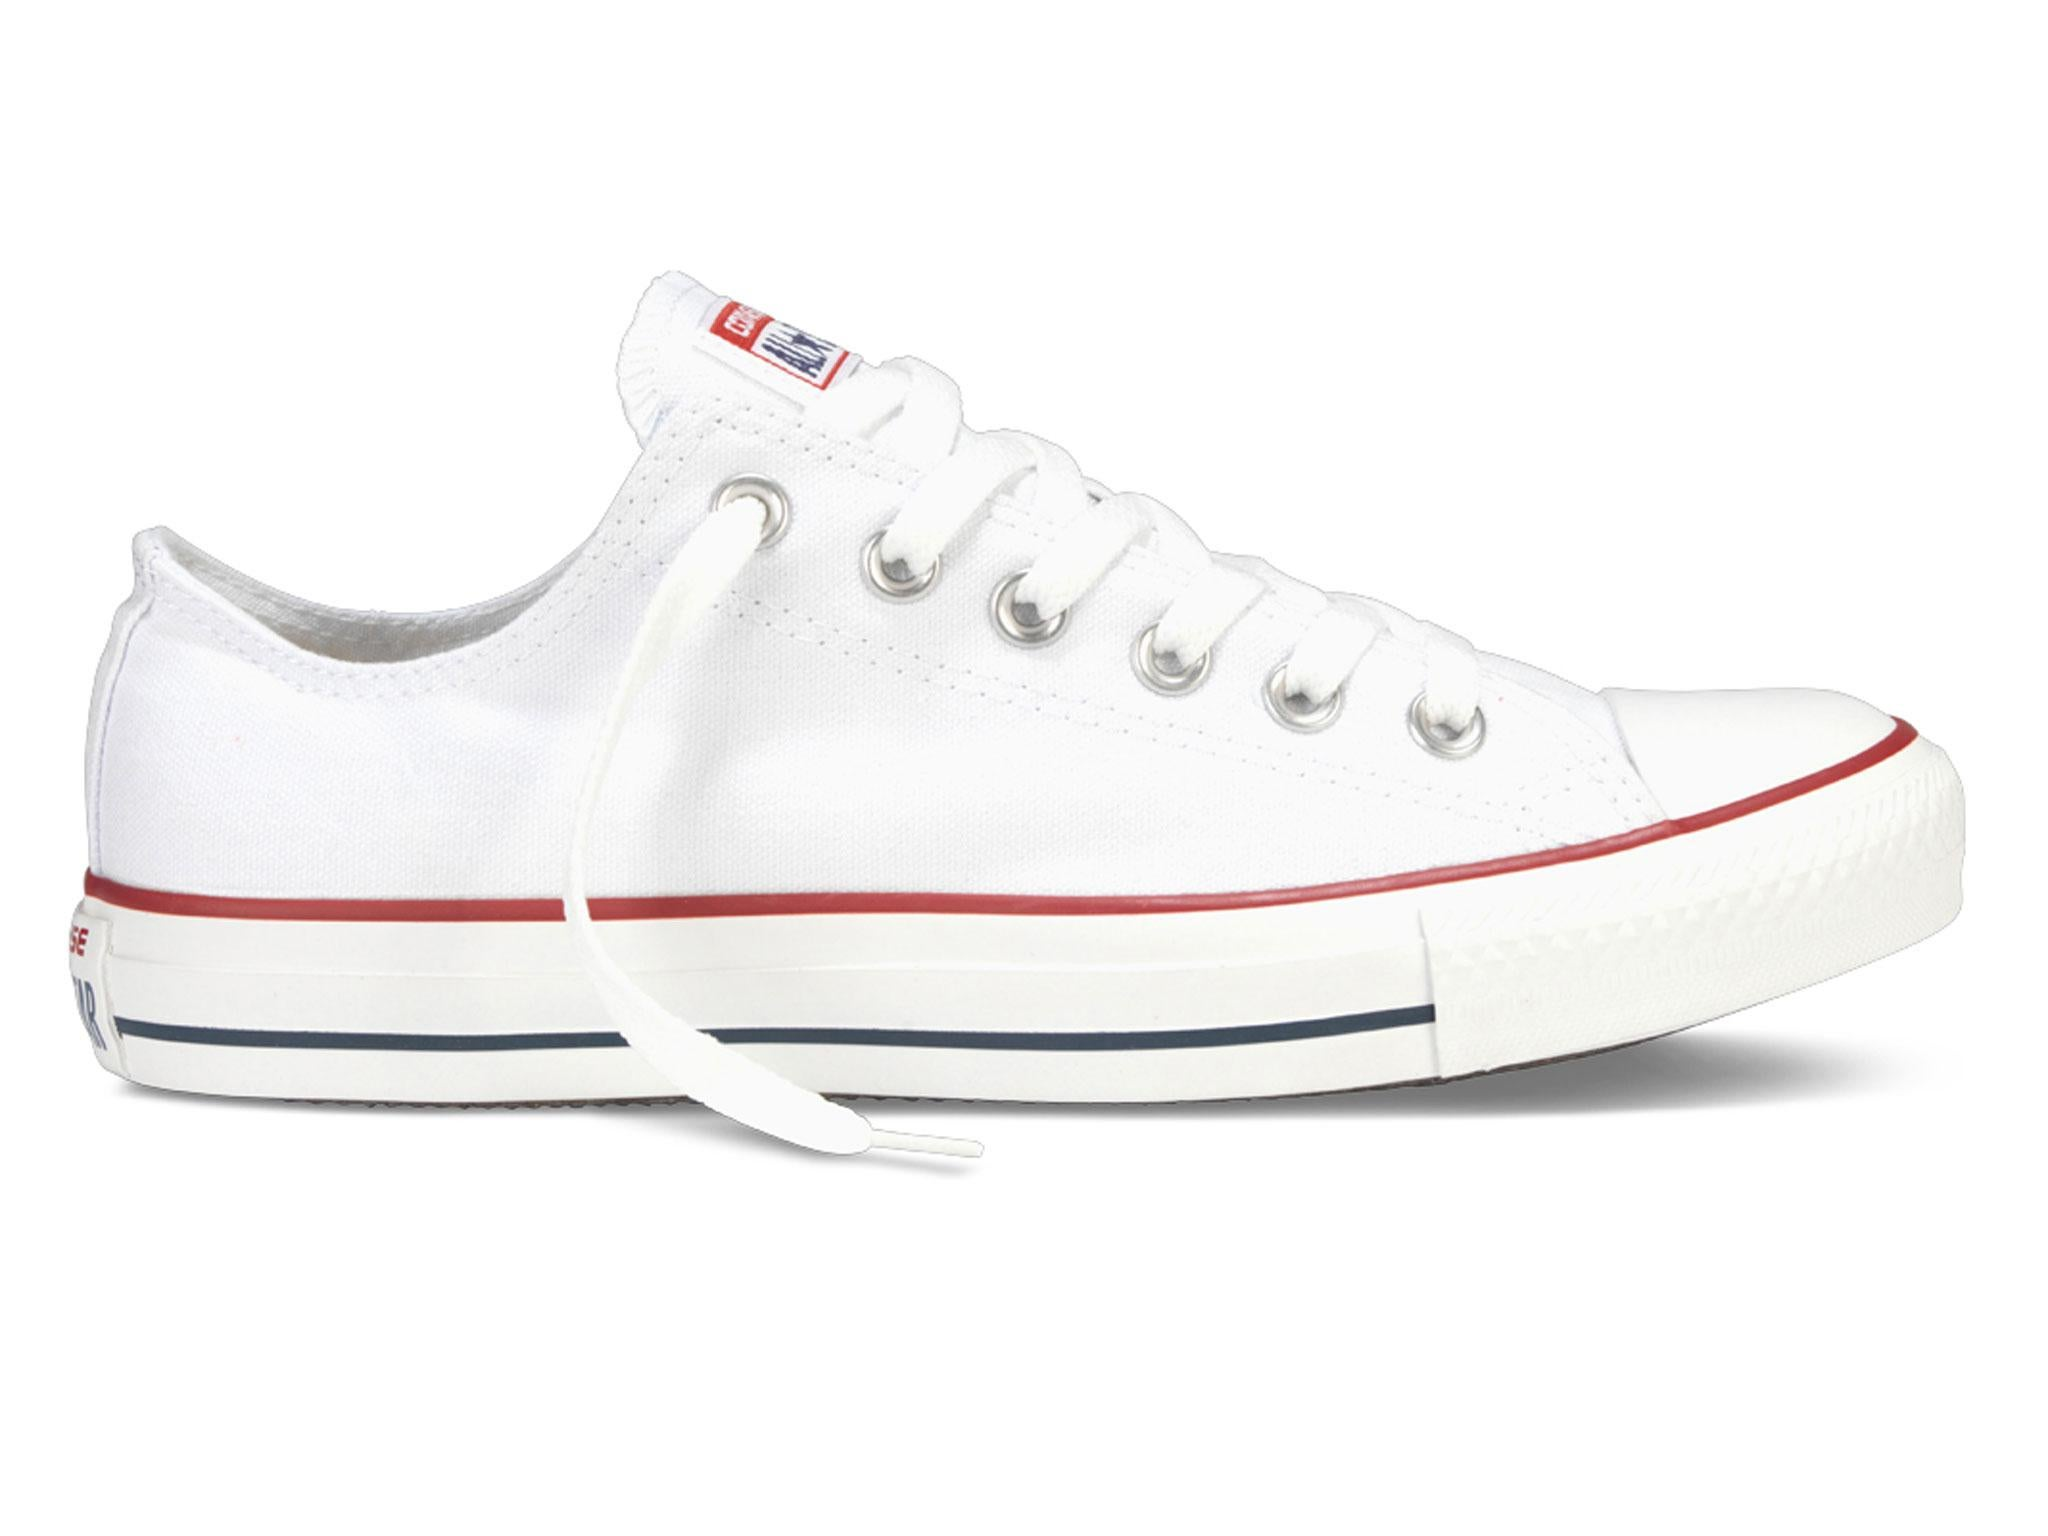 buy popular 060a8 bb42e They re made from a lightweight canvas-esque material with Converse s  signature styling and come in an impressive size range  3-13.